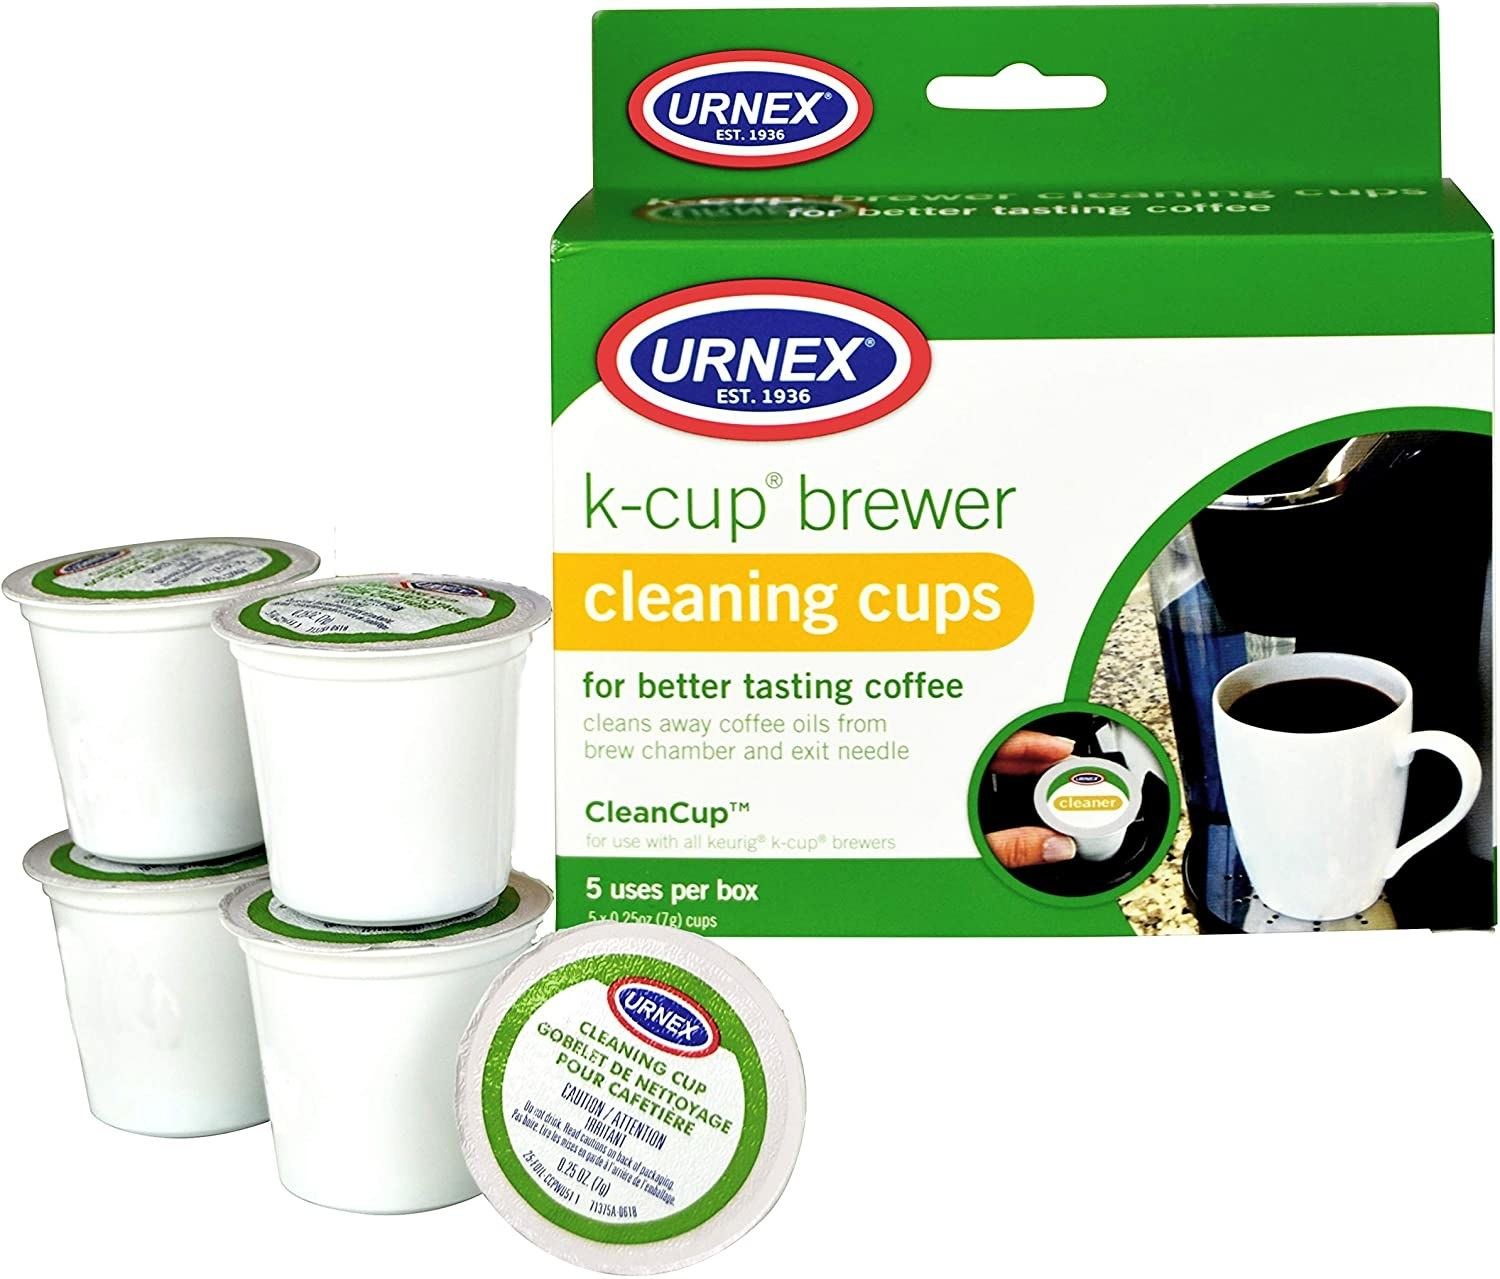 Five coffee maker cleaning cups next to the box it comes in